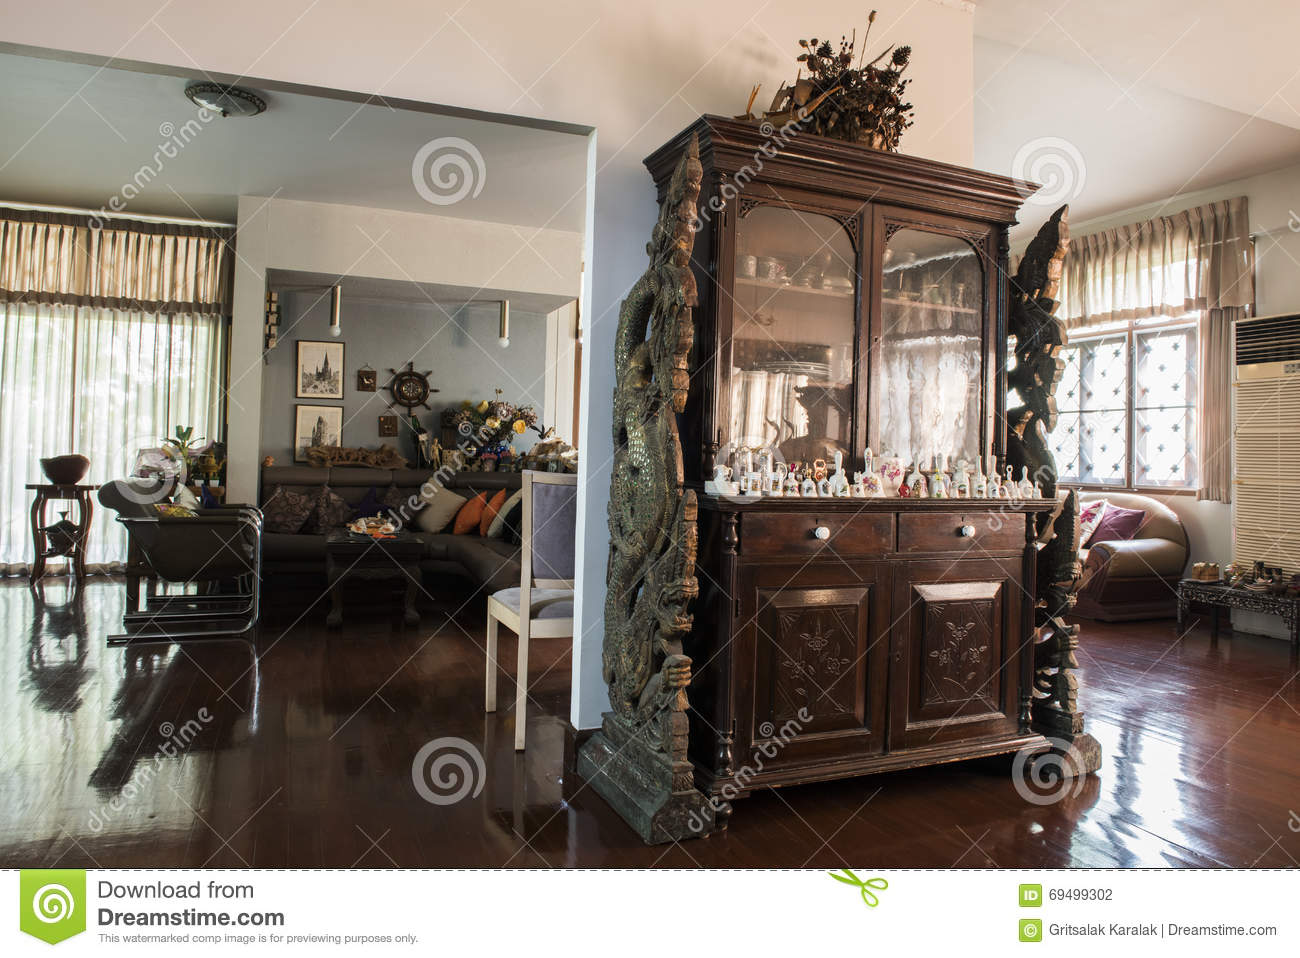 Old house furniture and decoration with evening warm light stock photo image 69499302 Show home furniture hours